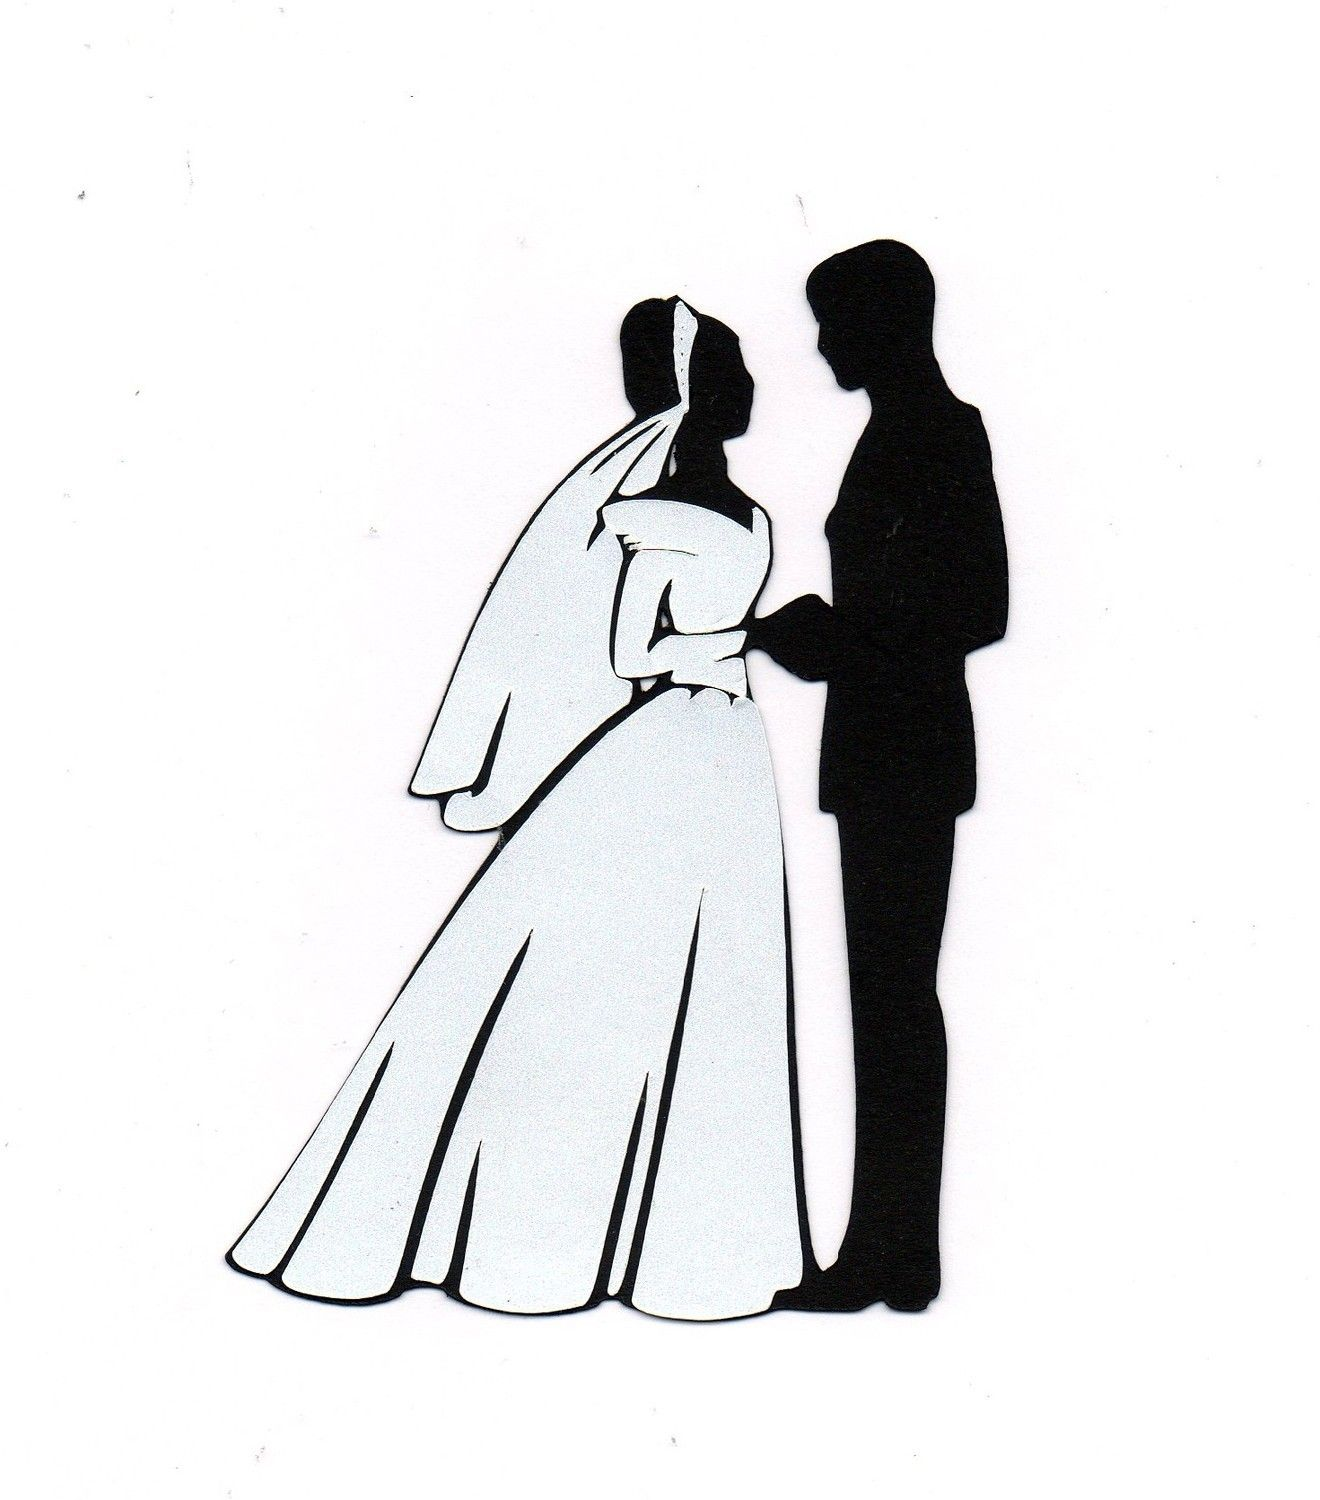 Groom clipart clip art. Bride silhouette at getdrawings